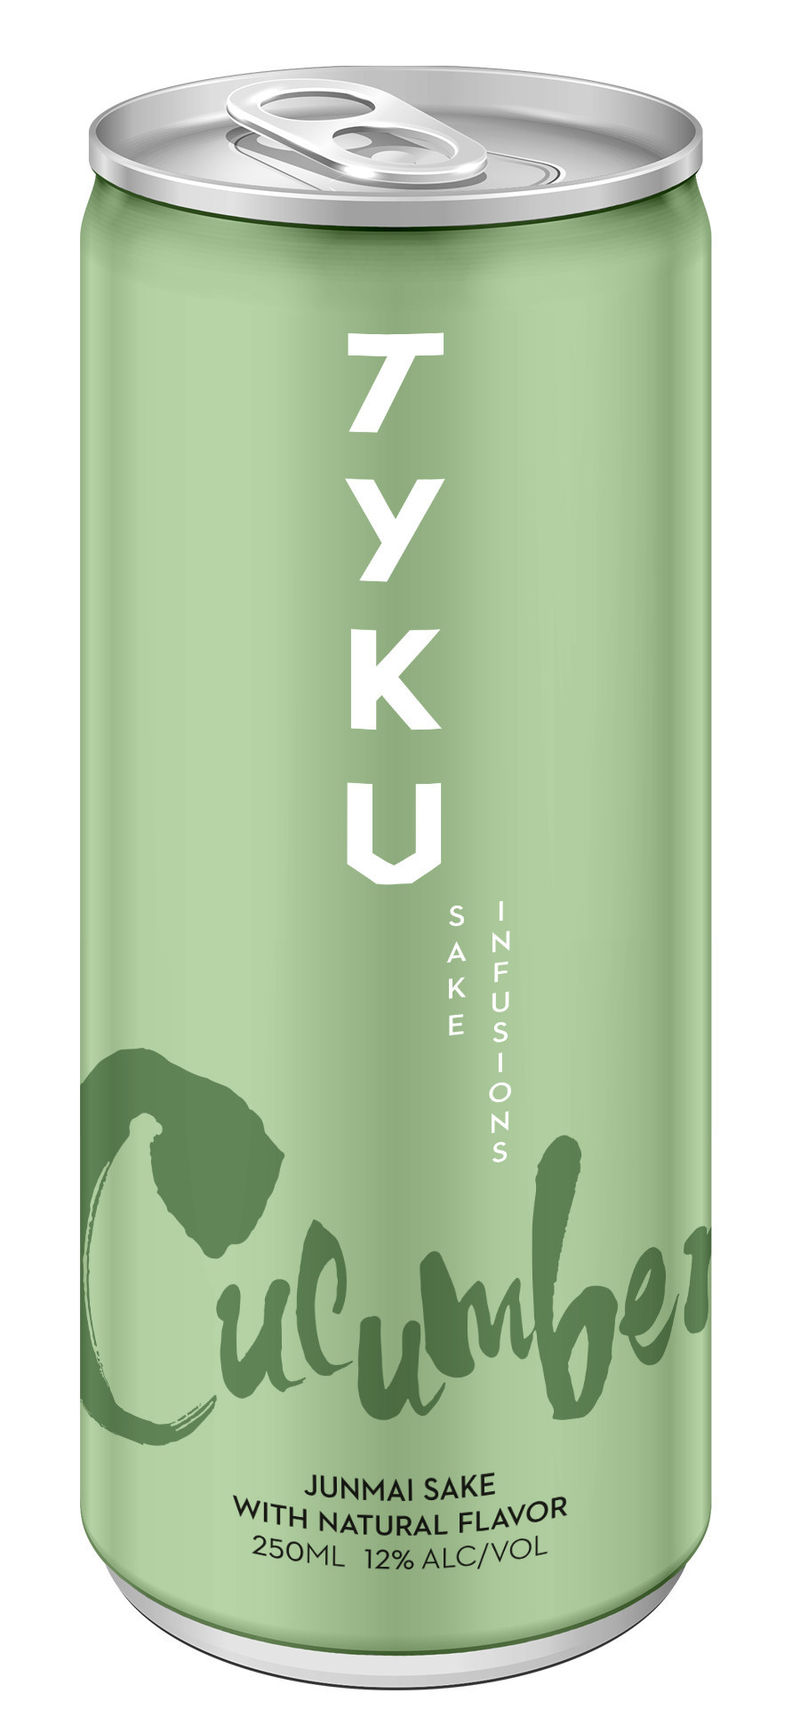 Canned Cucumber Sakes